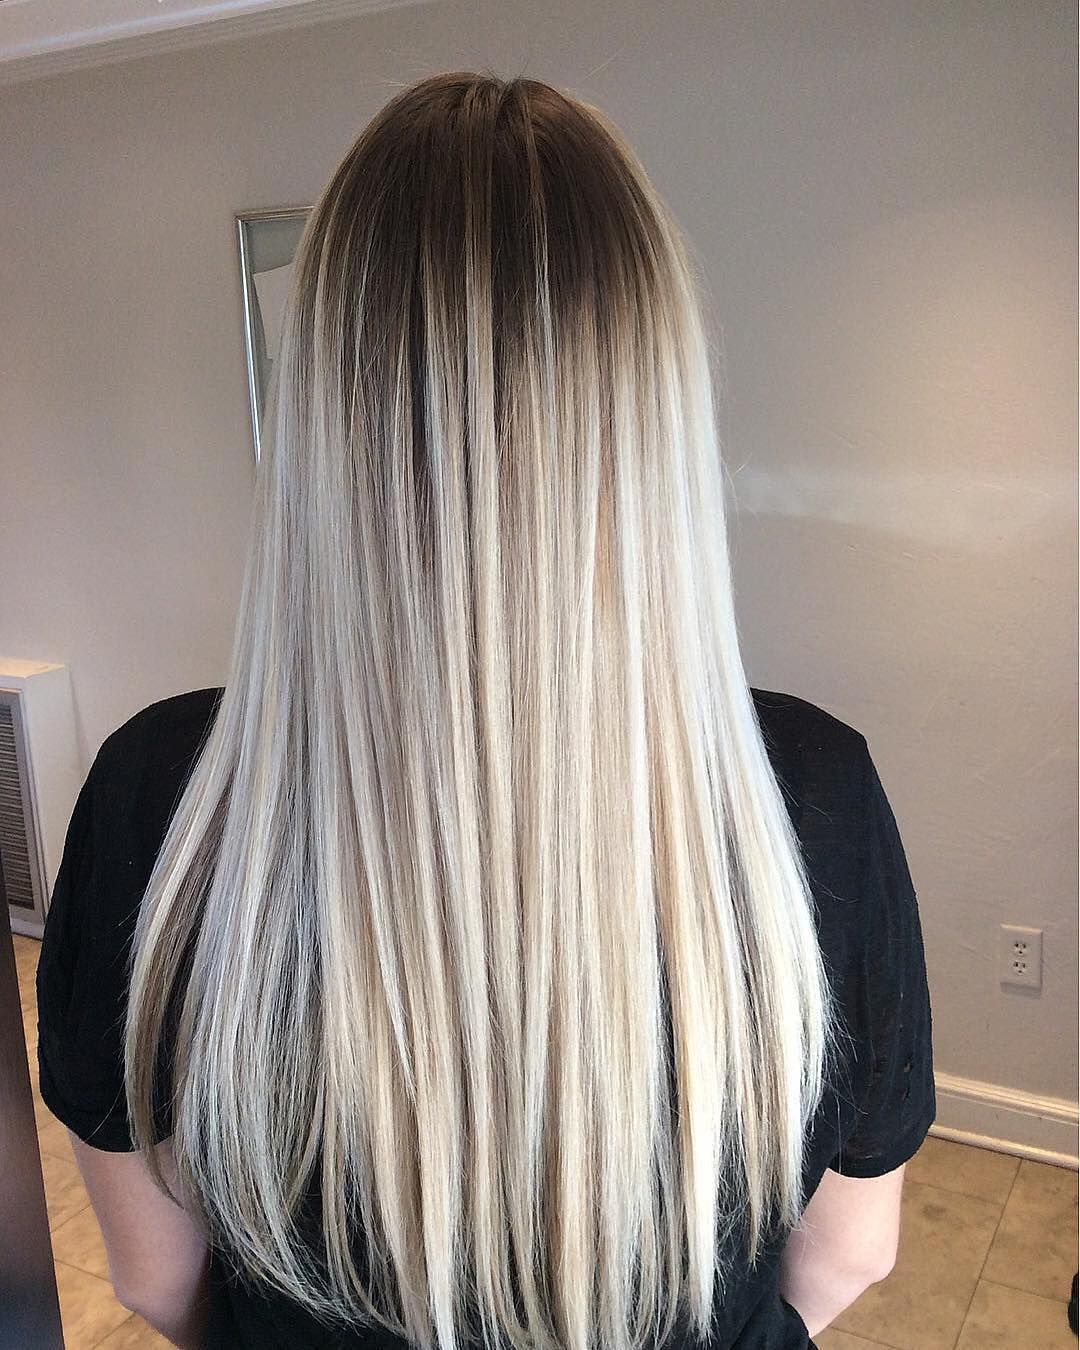 Pretty Ombre Balayage Hairstyle For Long Hair 2019 Long Hair Color And Haircuts Long Hair Styles Balayage Hair Long Hair Color